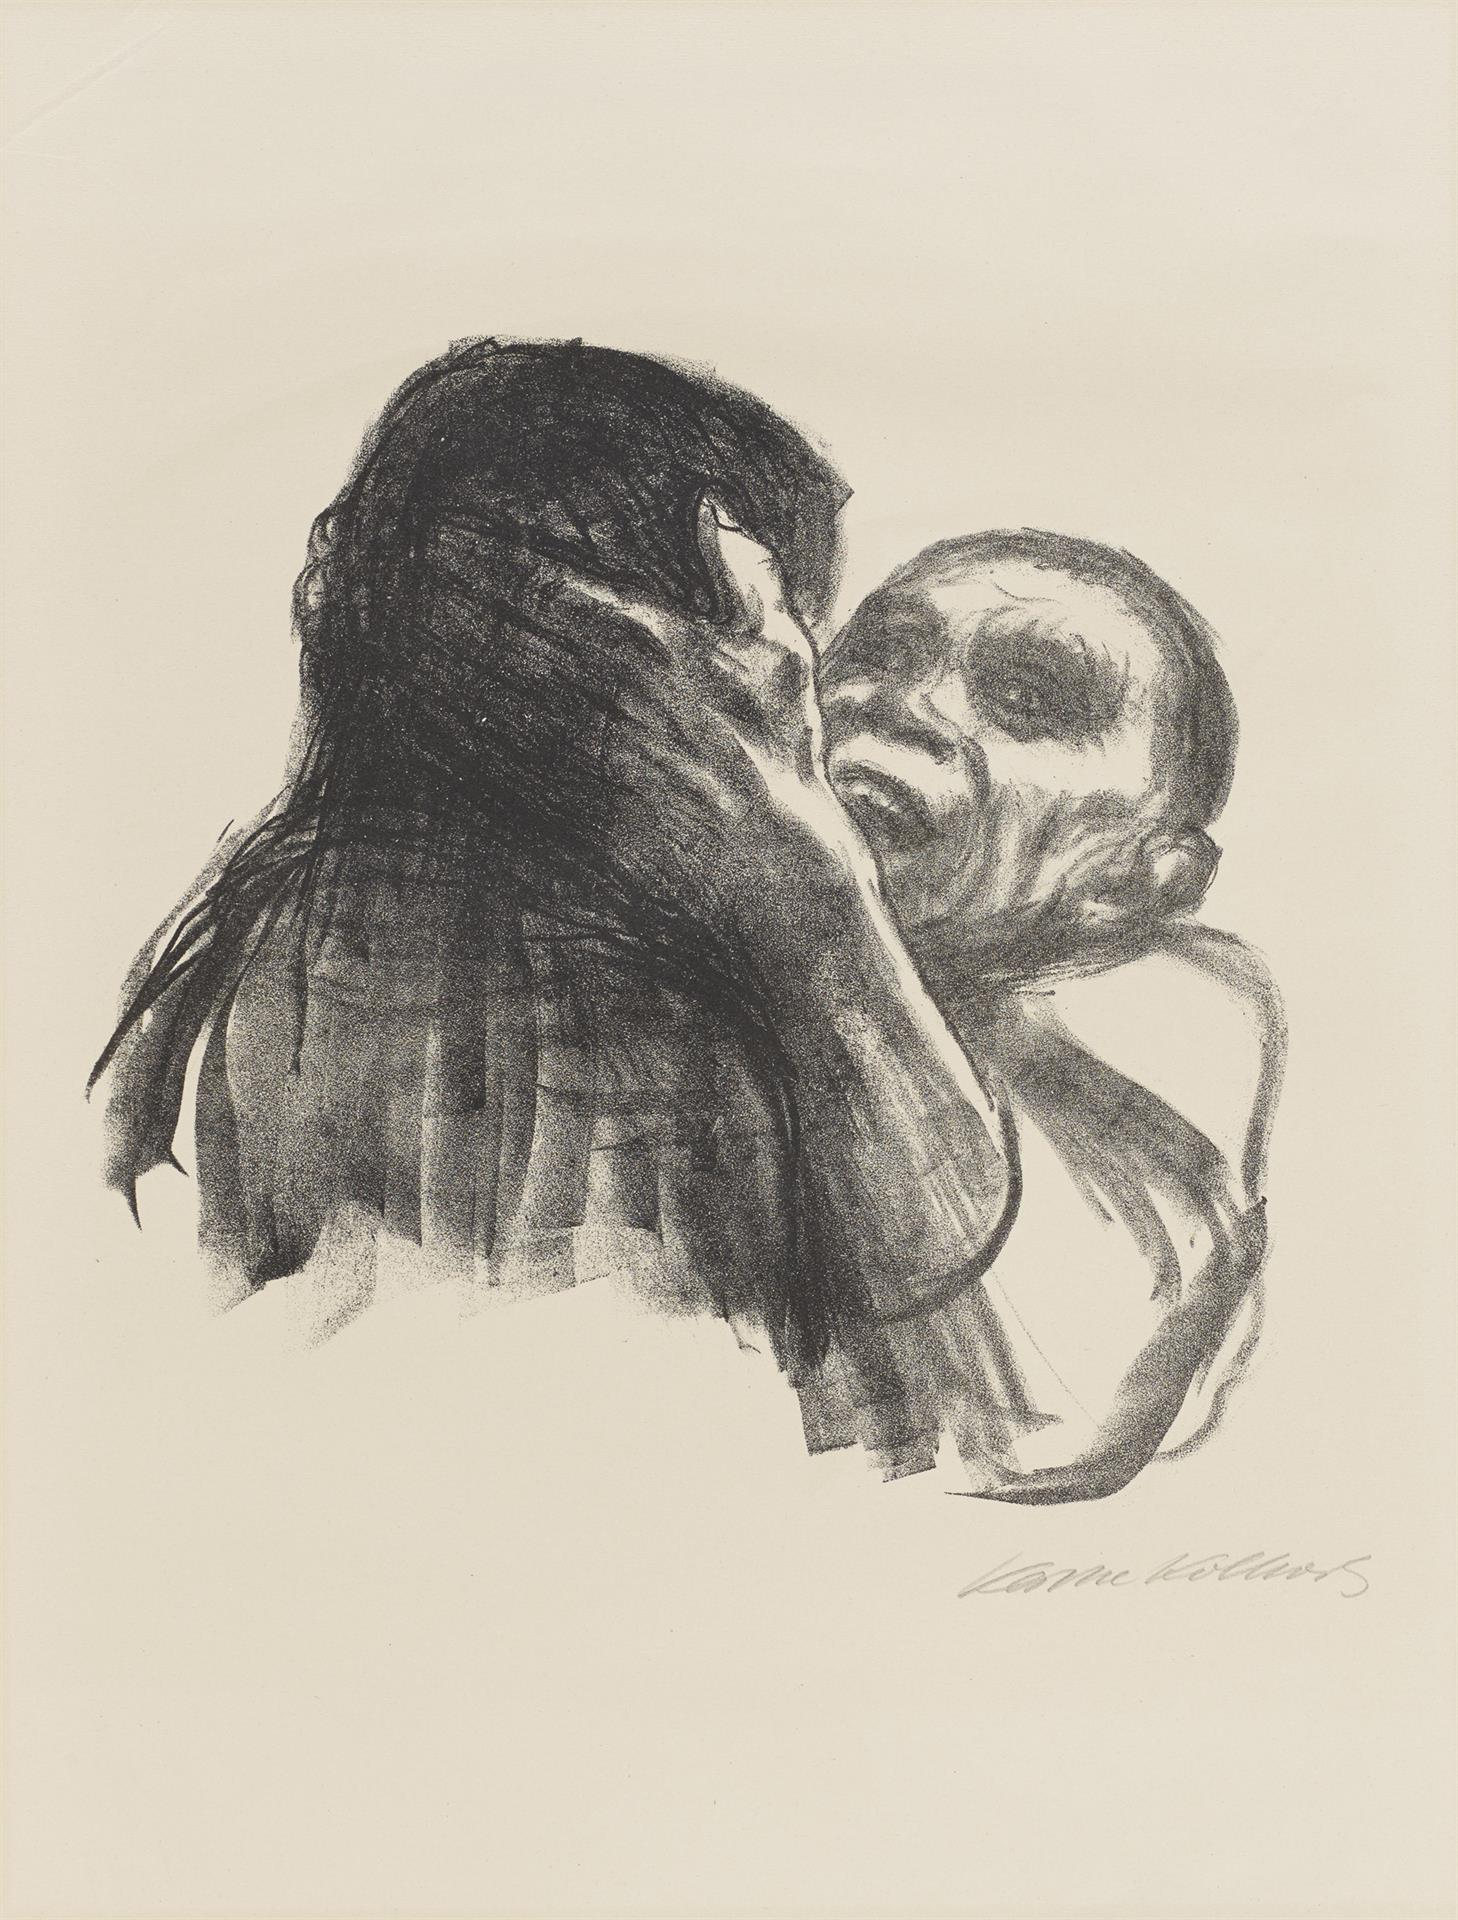 Käthe Kollwitz, Death is recognized as Friend, sheet 6 of the series »Death«, 1937, crayon lithograph, Kn 271 b, Cologne Kollwitz Collection © Käthe Kollwitz Museum Köln